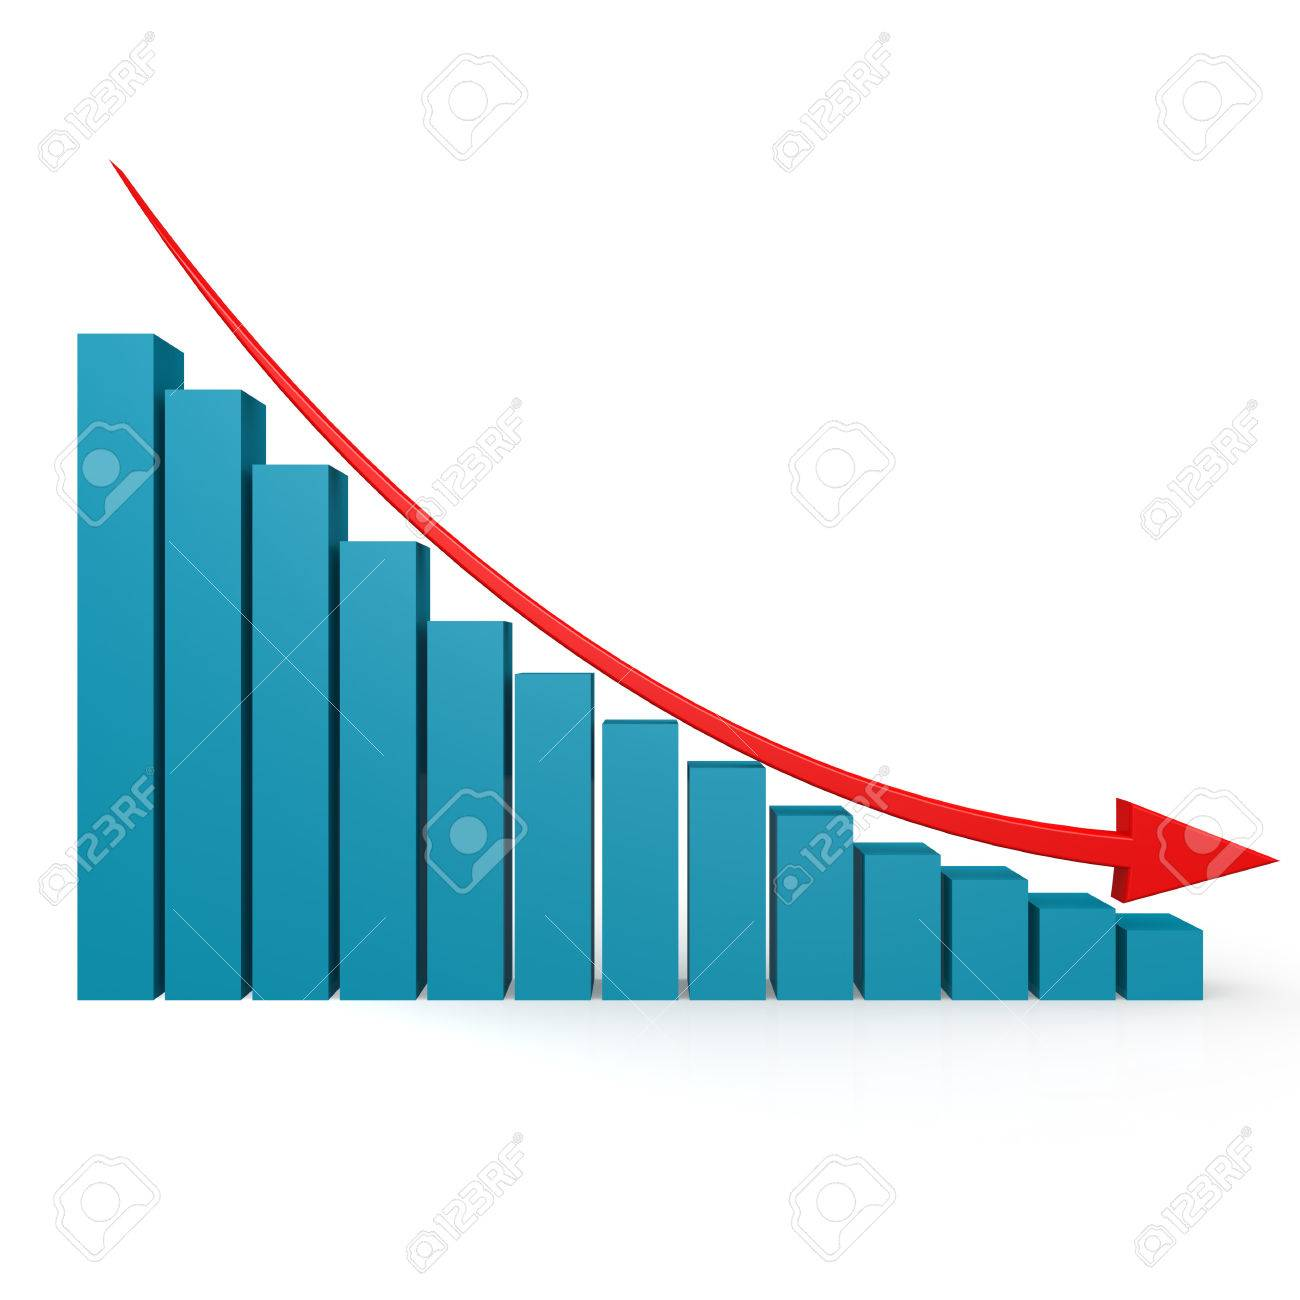 Blue graph and red arrow down image with hi-res rendered artwork that could be used for any graphic design. - 44153115